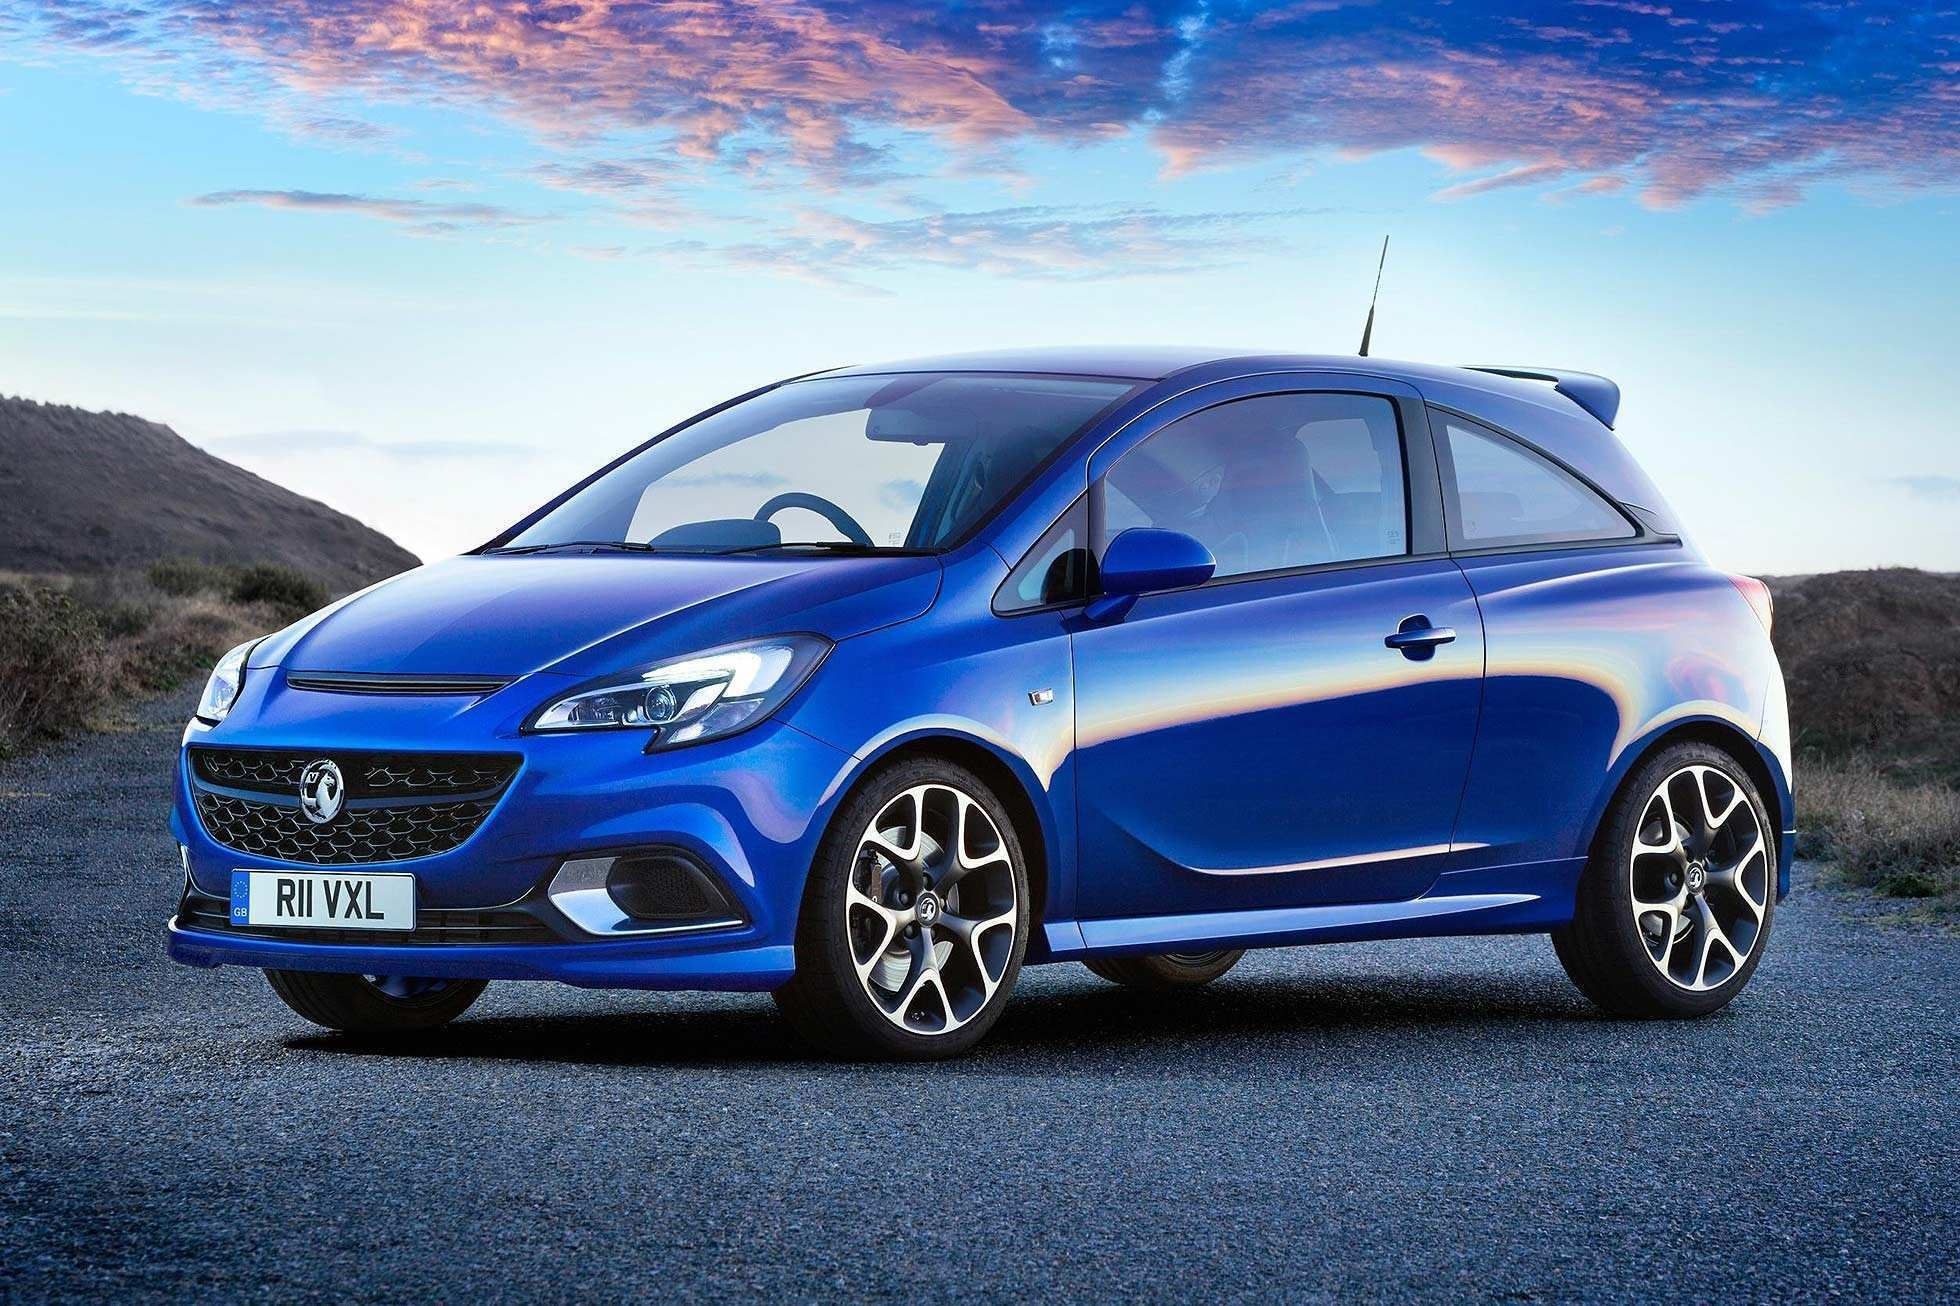 23 All New 2020 Vauxhall Corsa VXR Price and Review by 2020 Vauxhall Corsa VXR